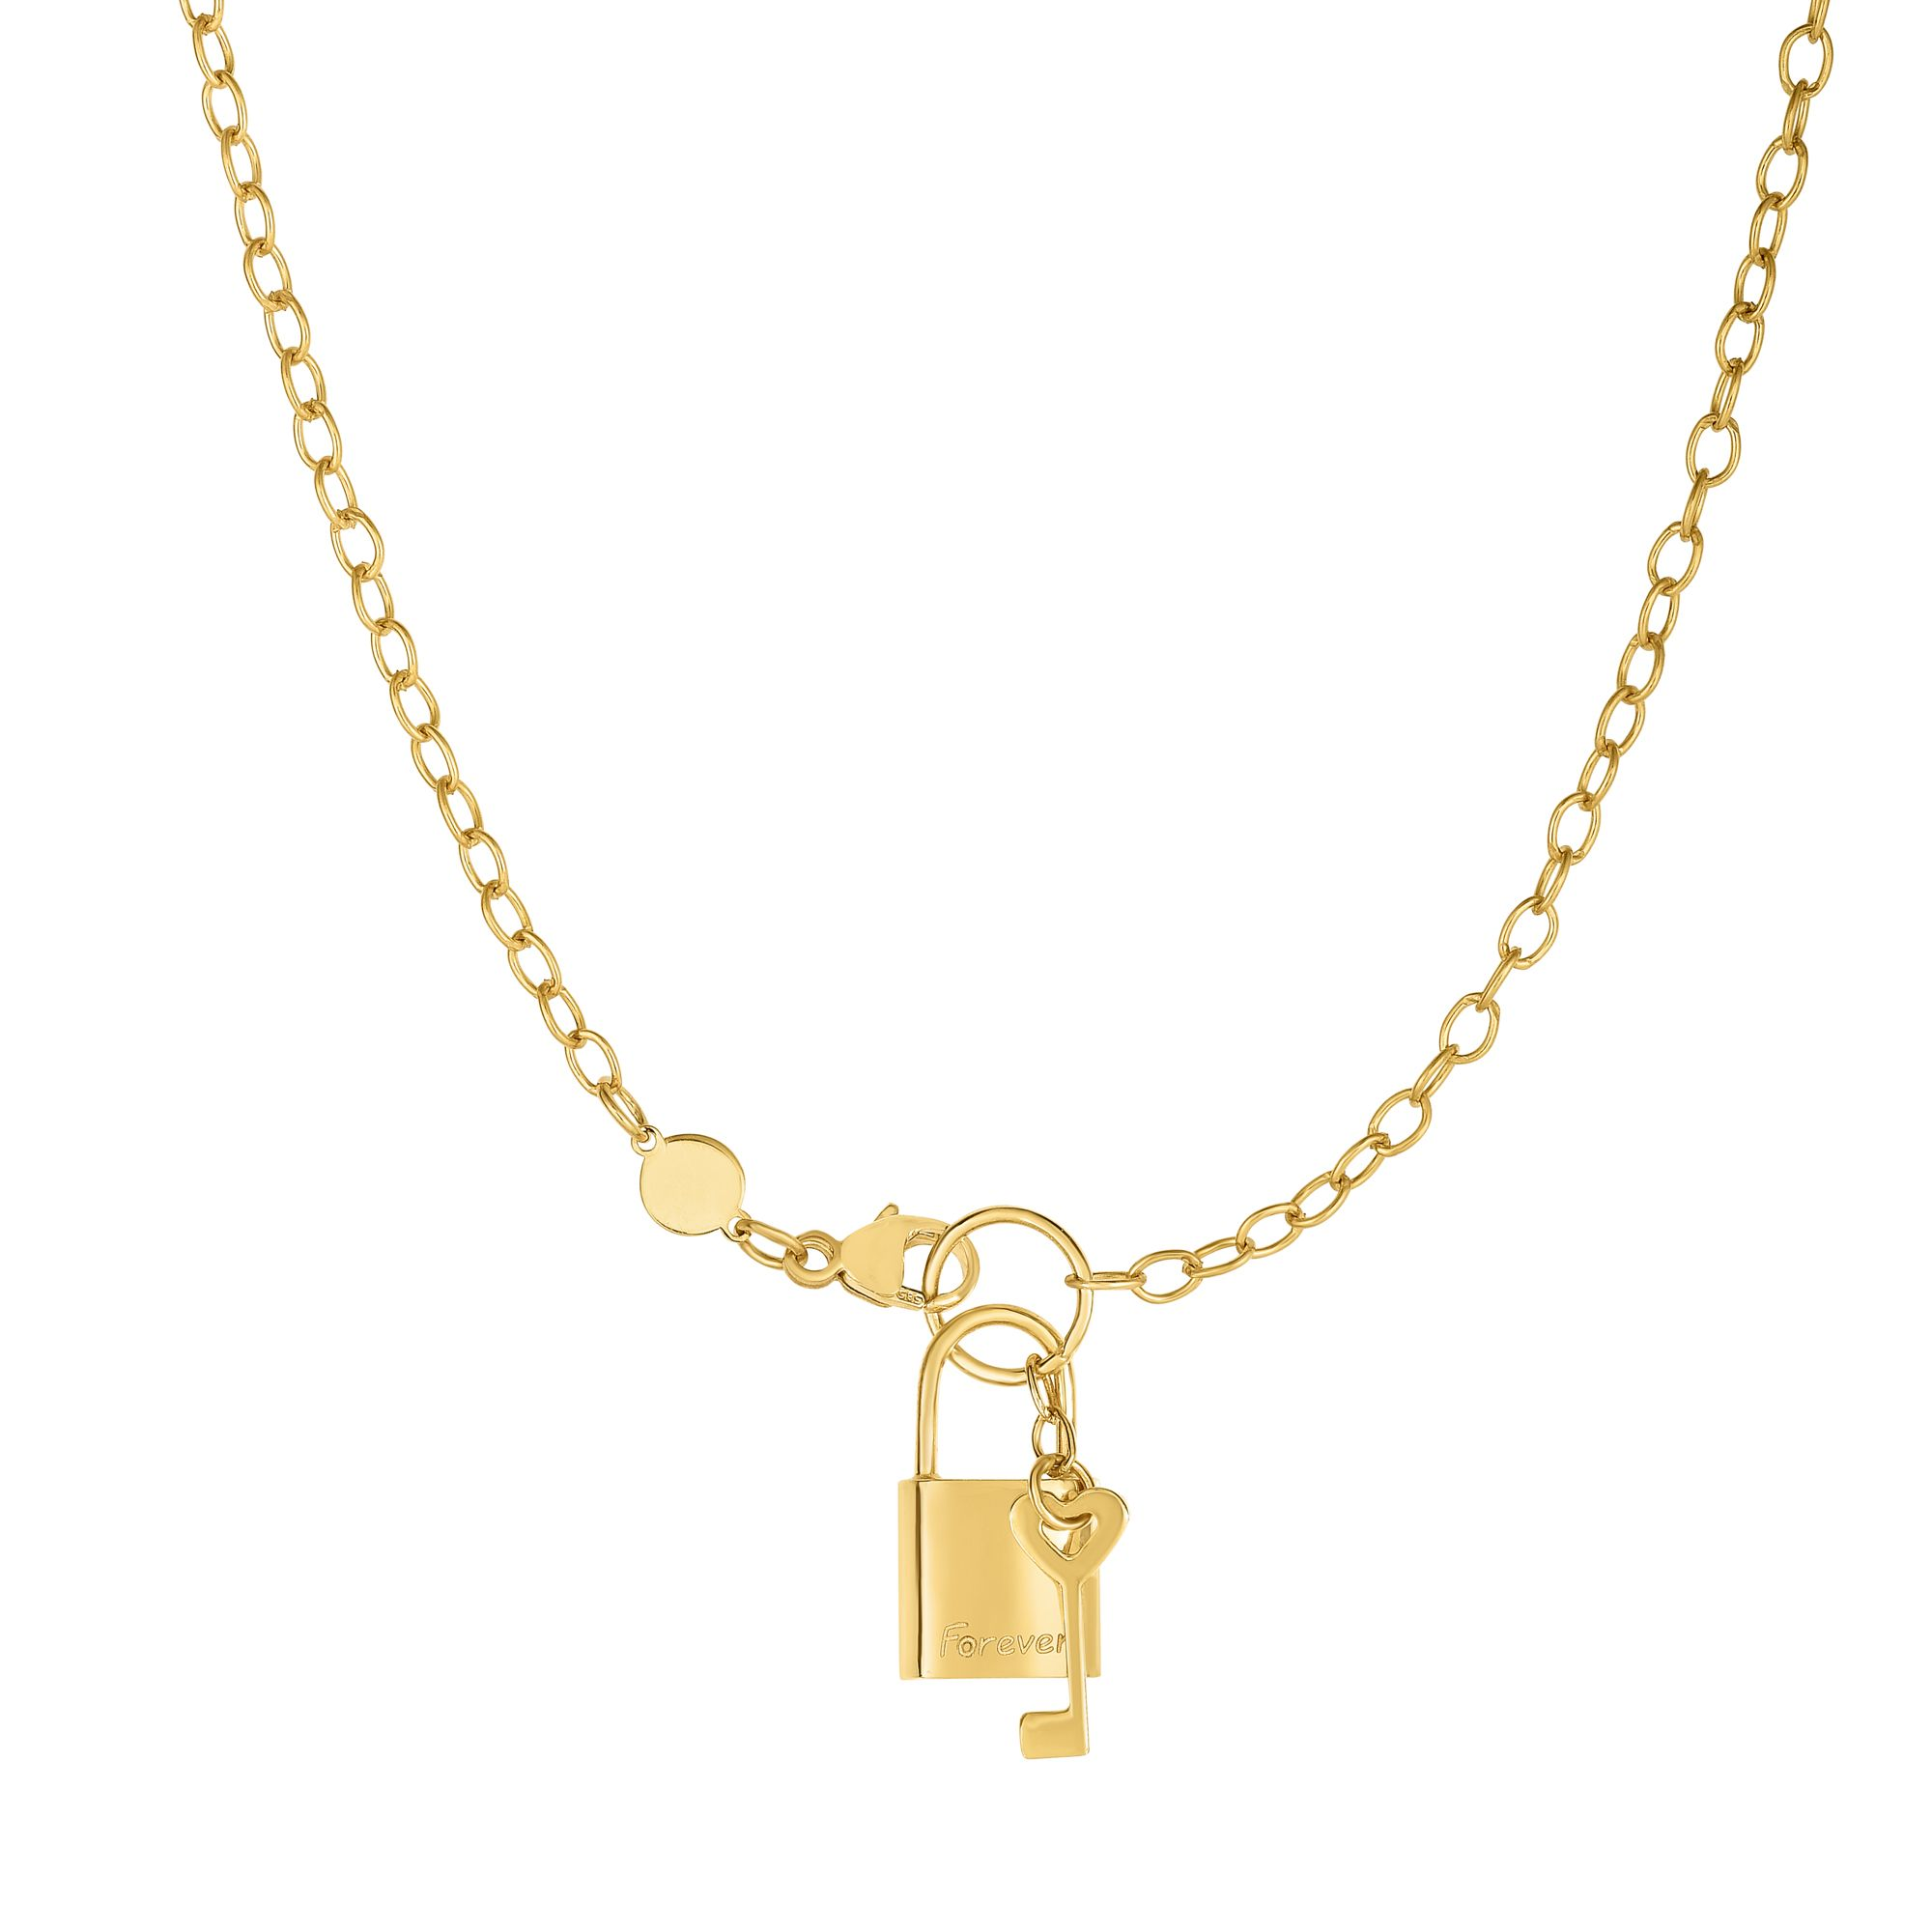 "14k Shiny Yellow Gold Forever Lock And Key Elements On Link Chain Necklace 18"" by JewelStop"